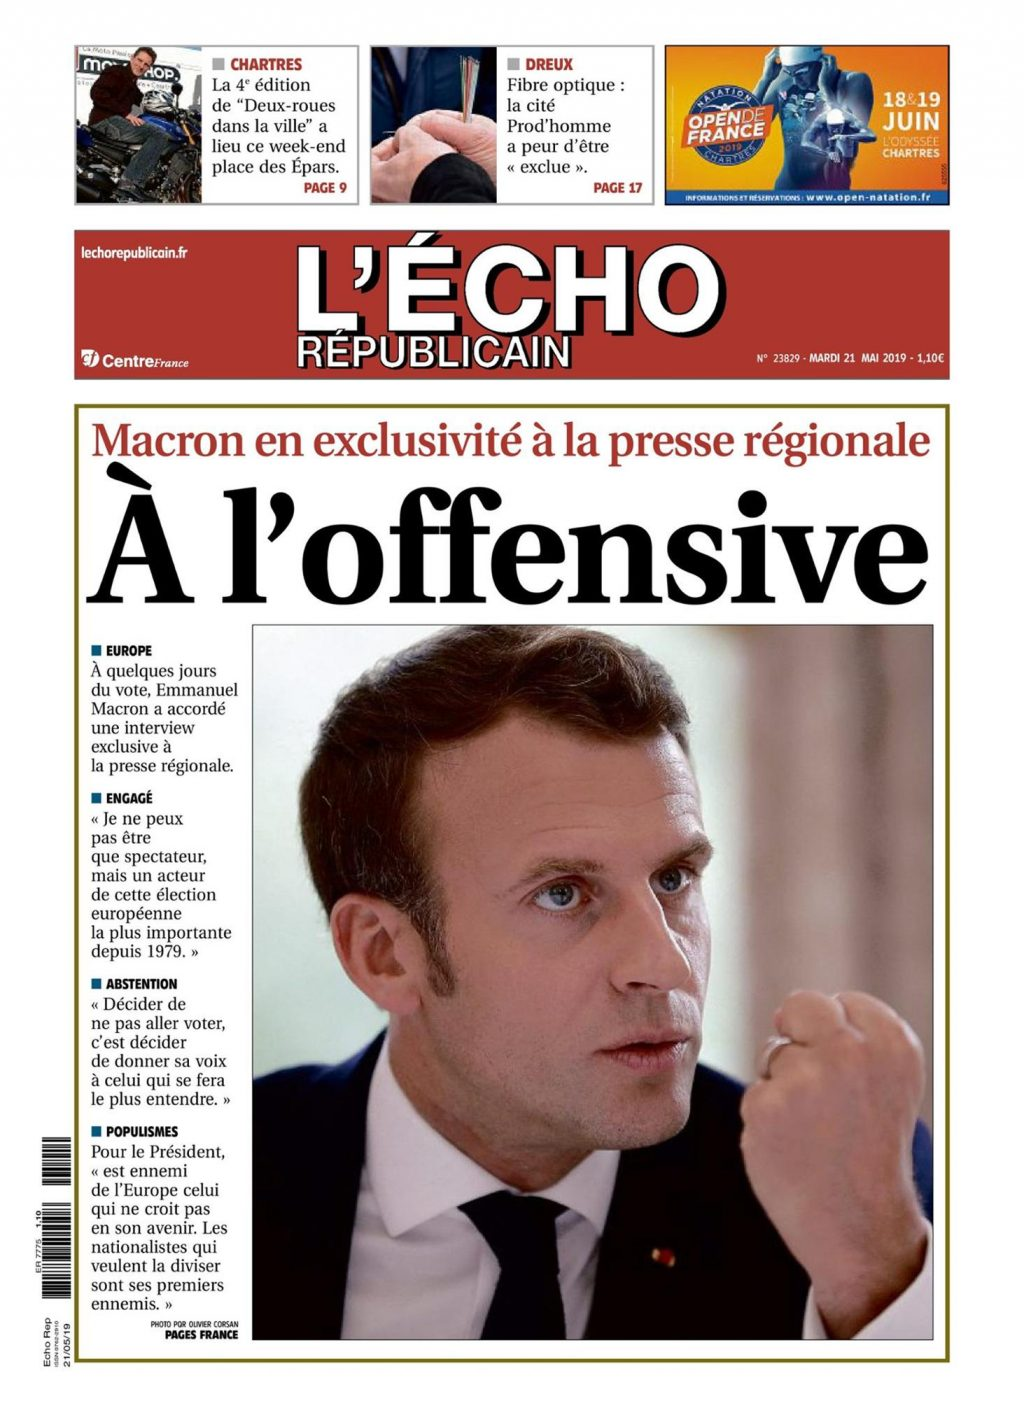 Écho 21-05-2019 Une Interview Macron